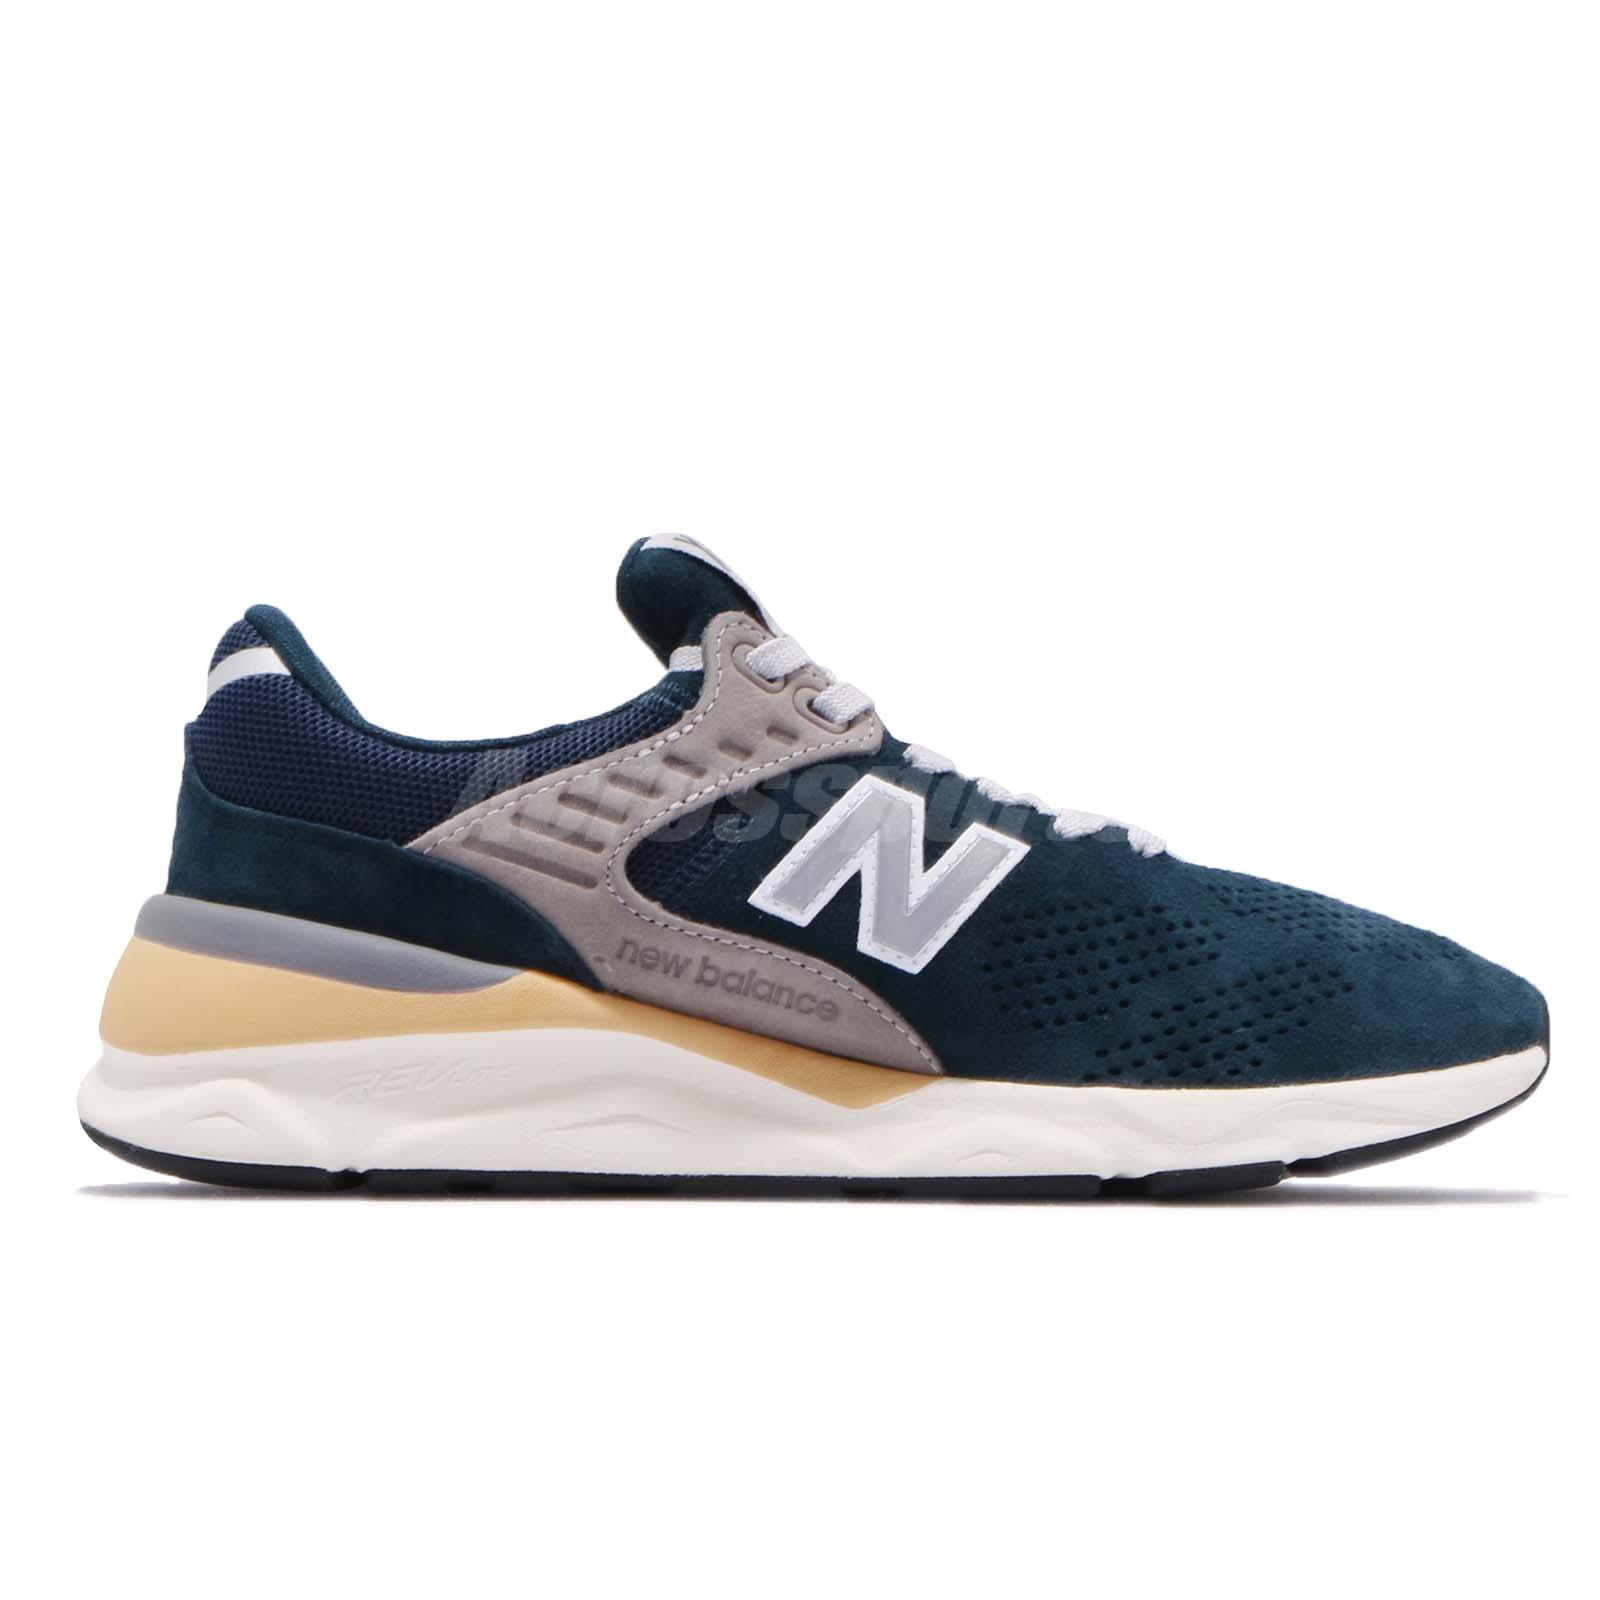 New Balance MSX90PNA D Blue Silver White Men Running Shoes Sneakers ... fea905191cab7